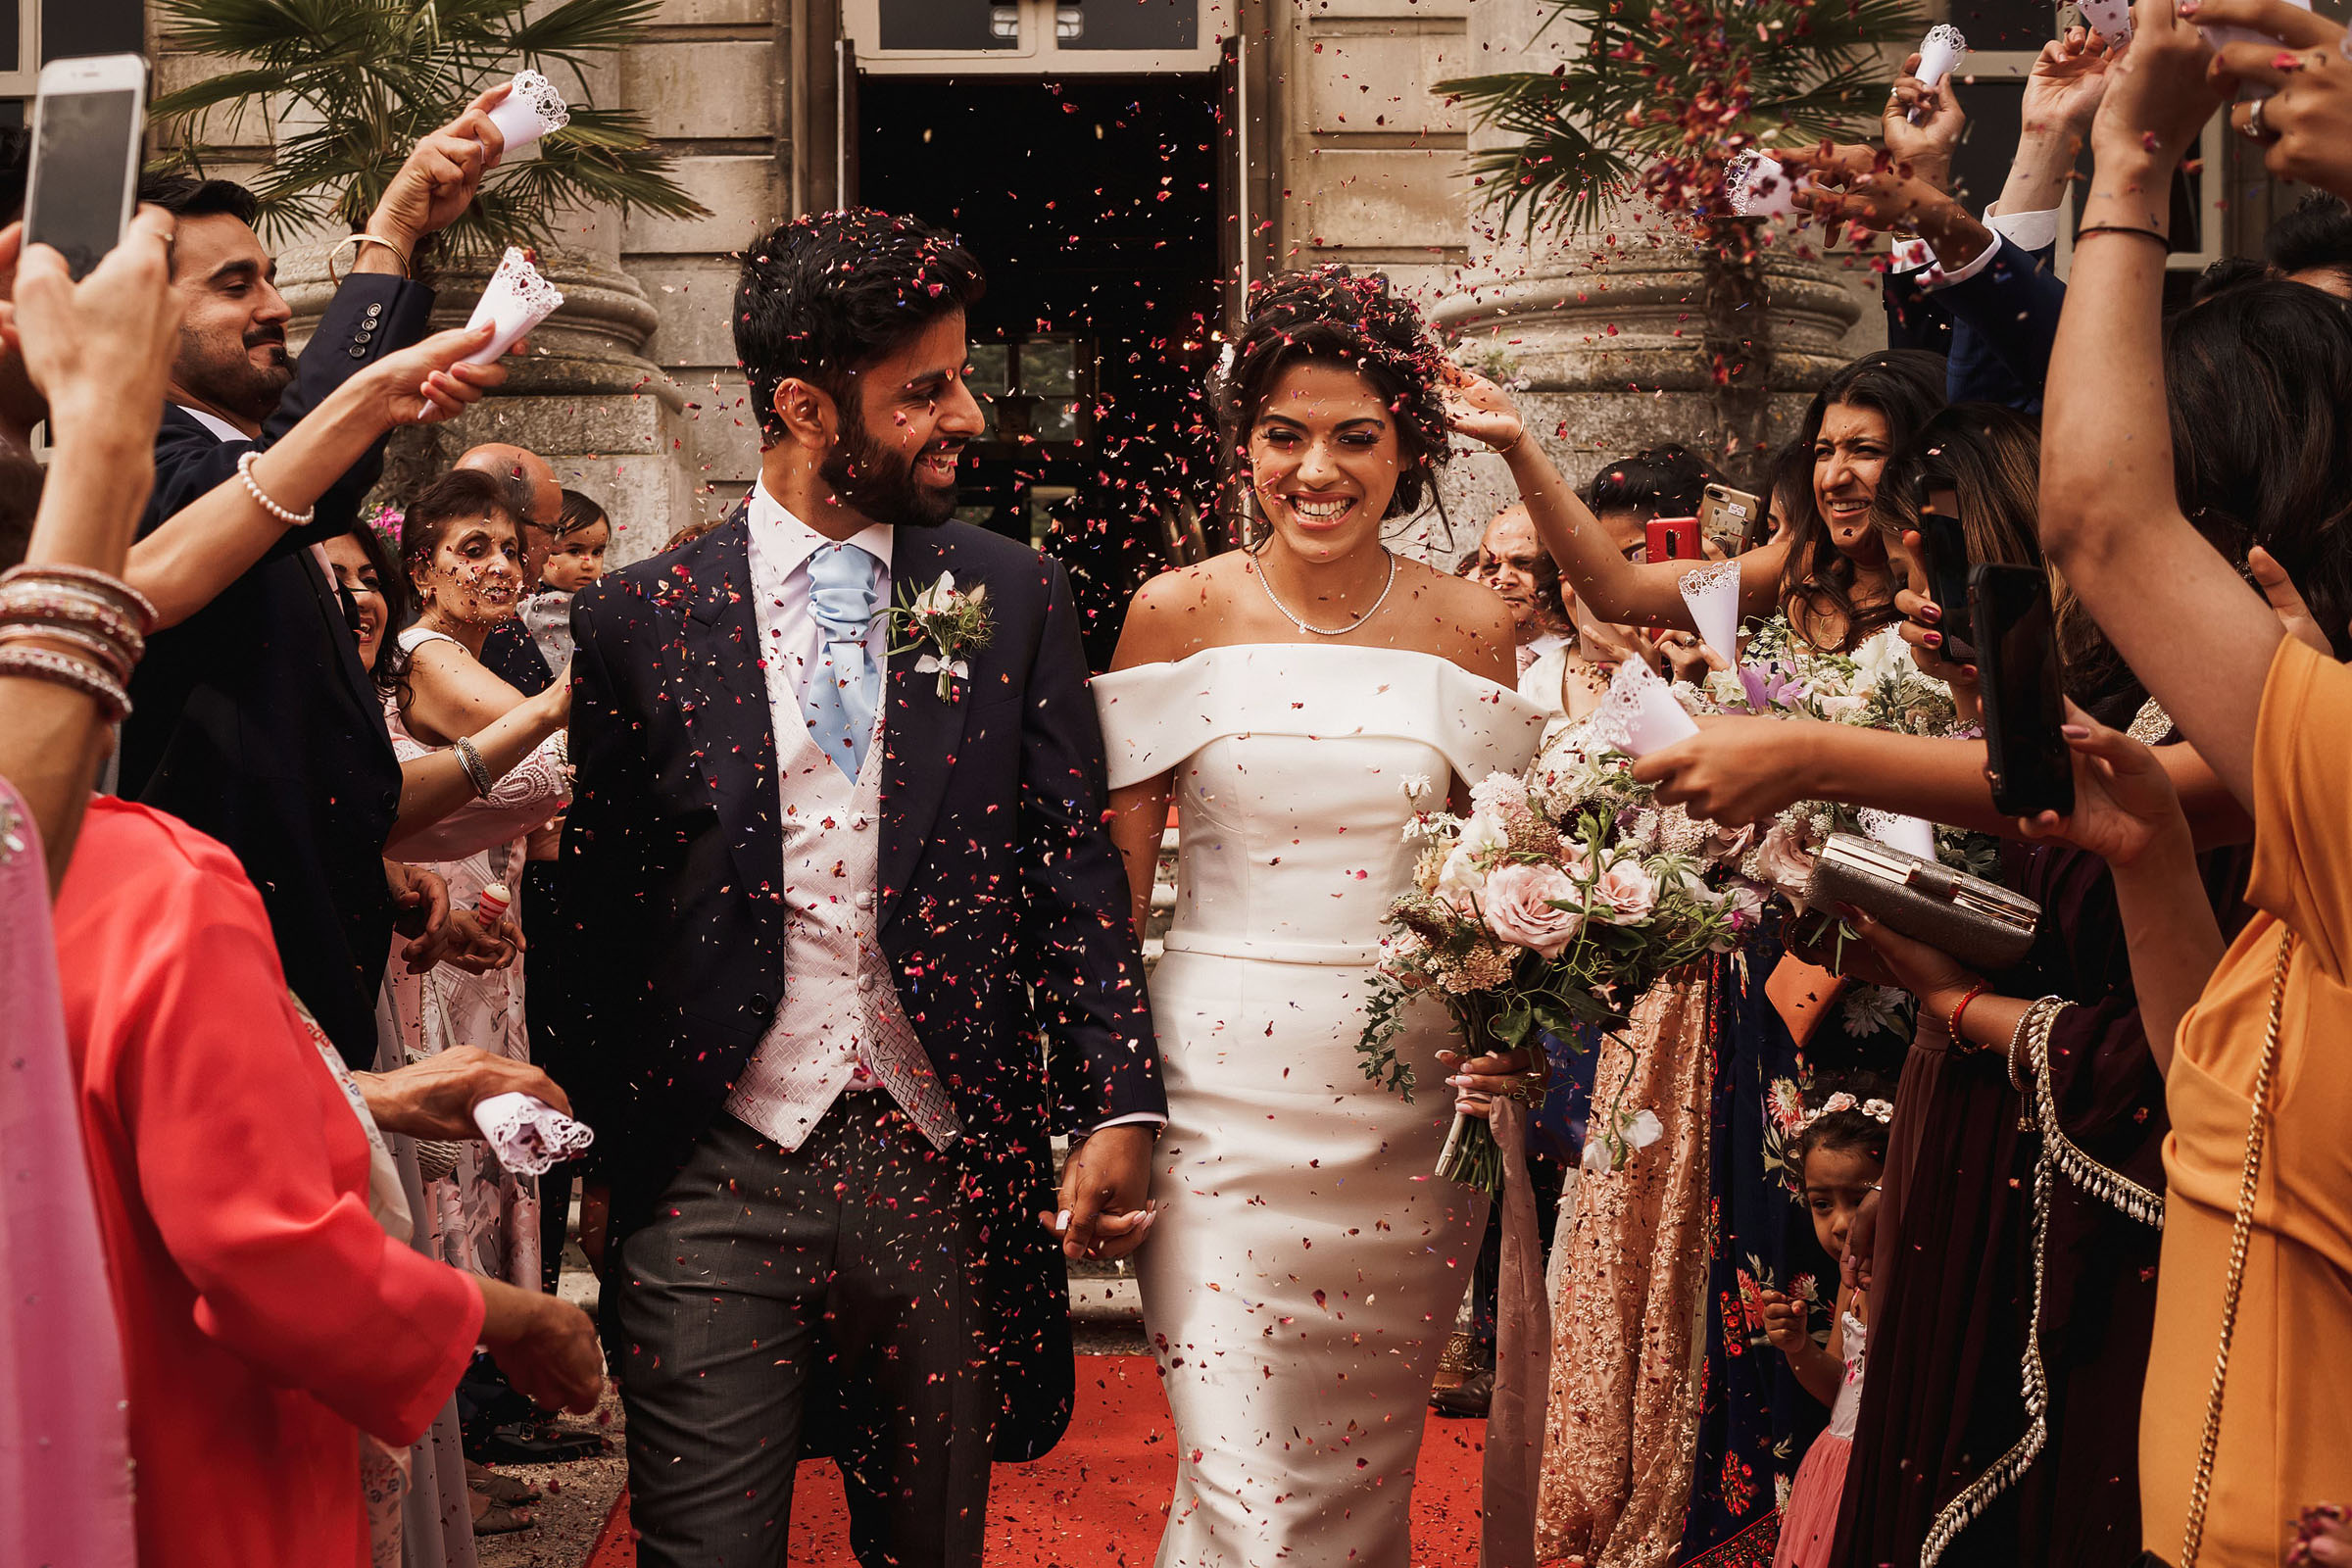 Happy couple exit amid confetti - Photo by F5 Photography